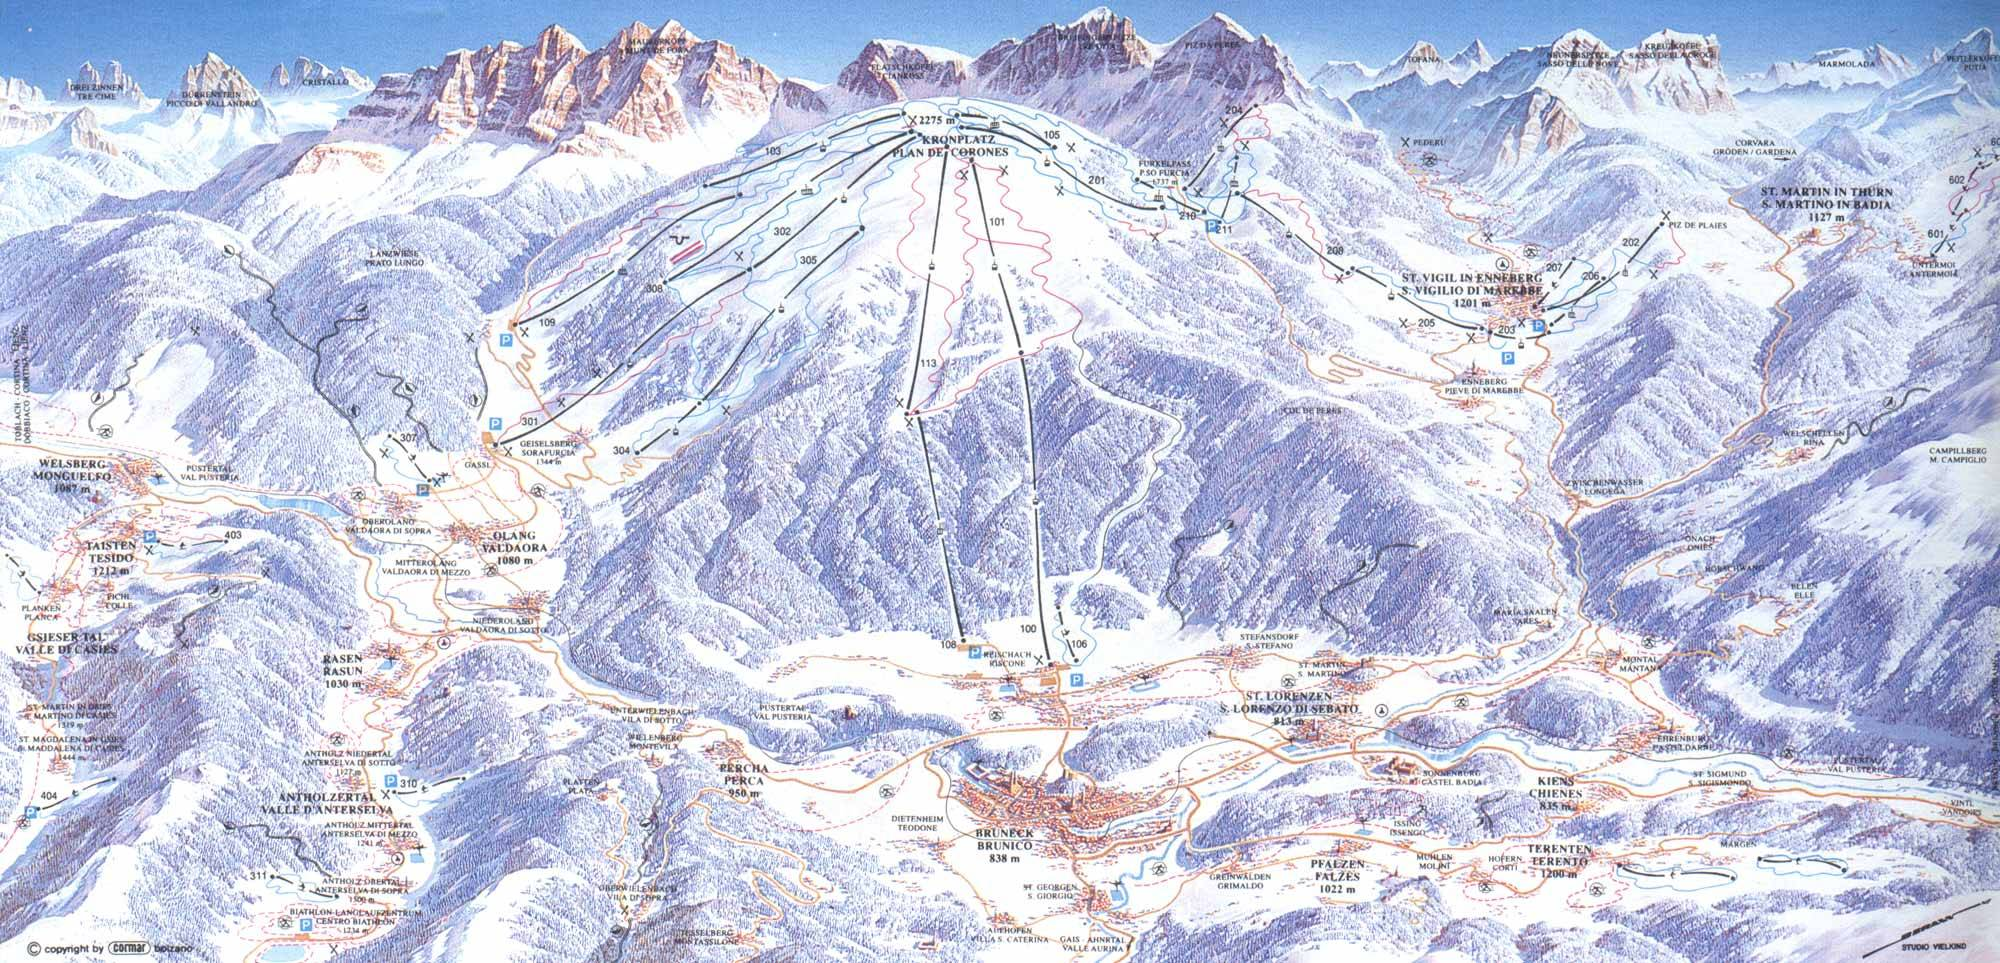 BruneckOlangSt Vigil Piste Map Trail Map